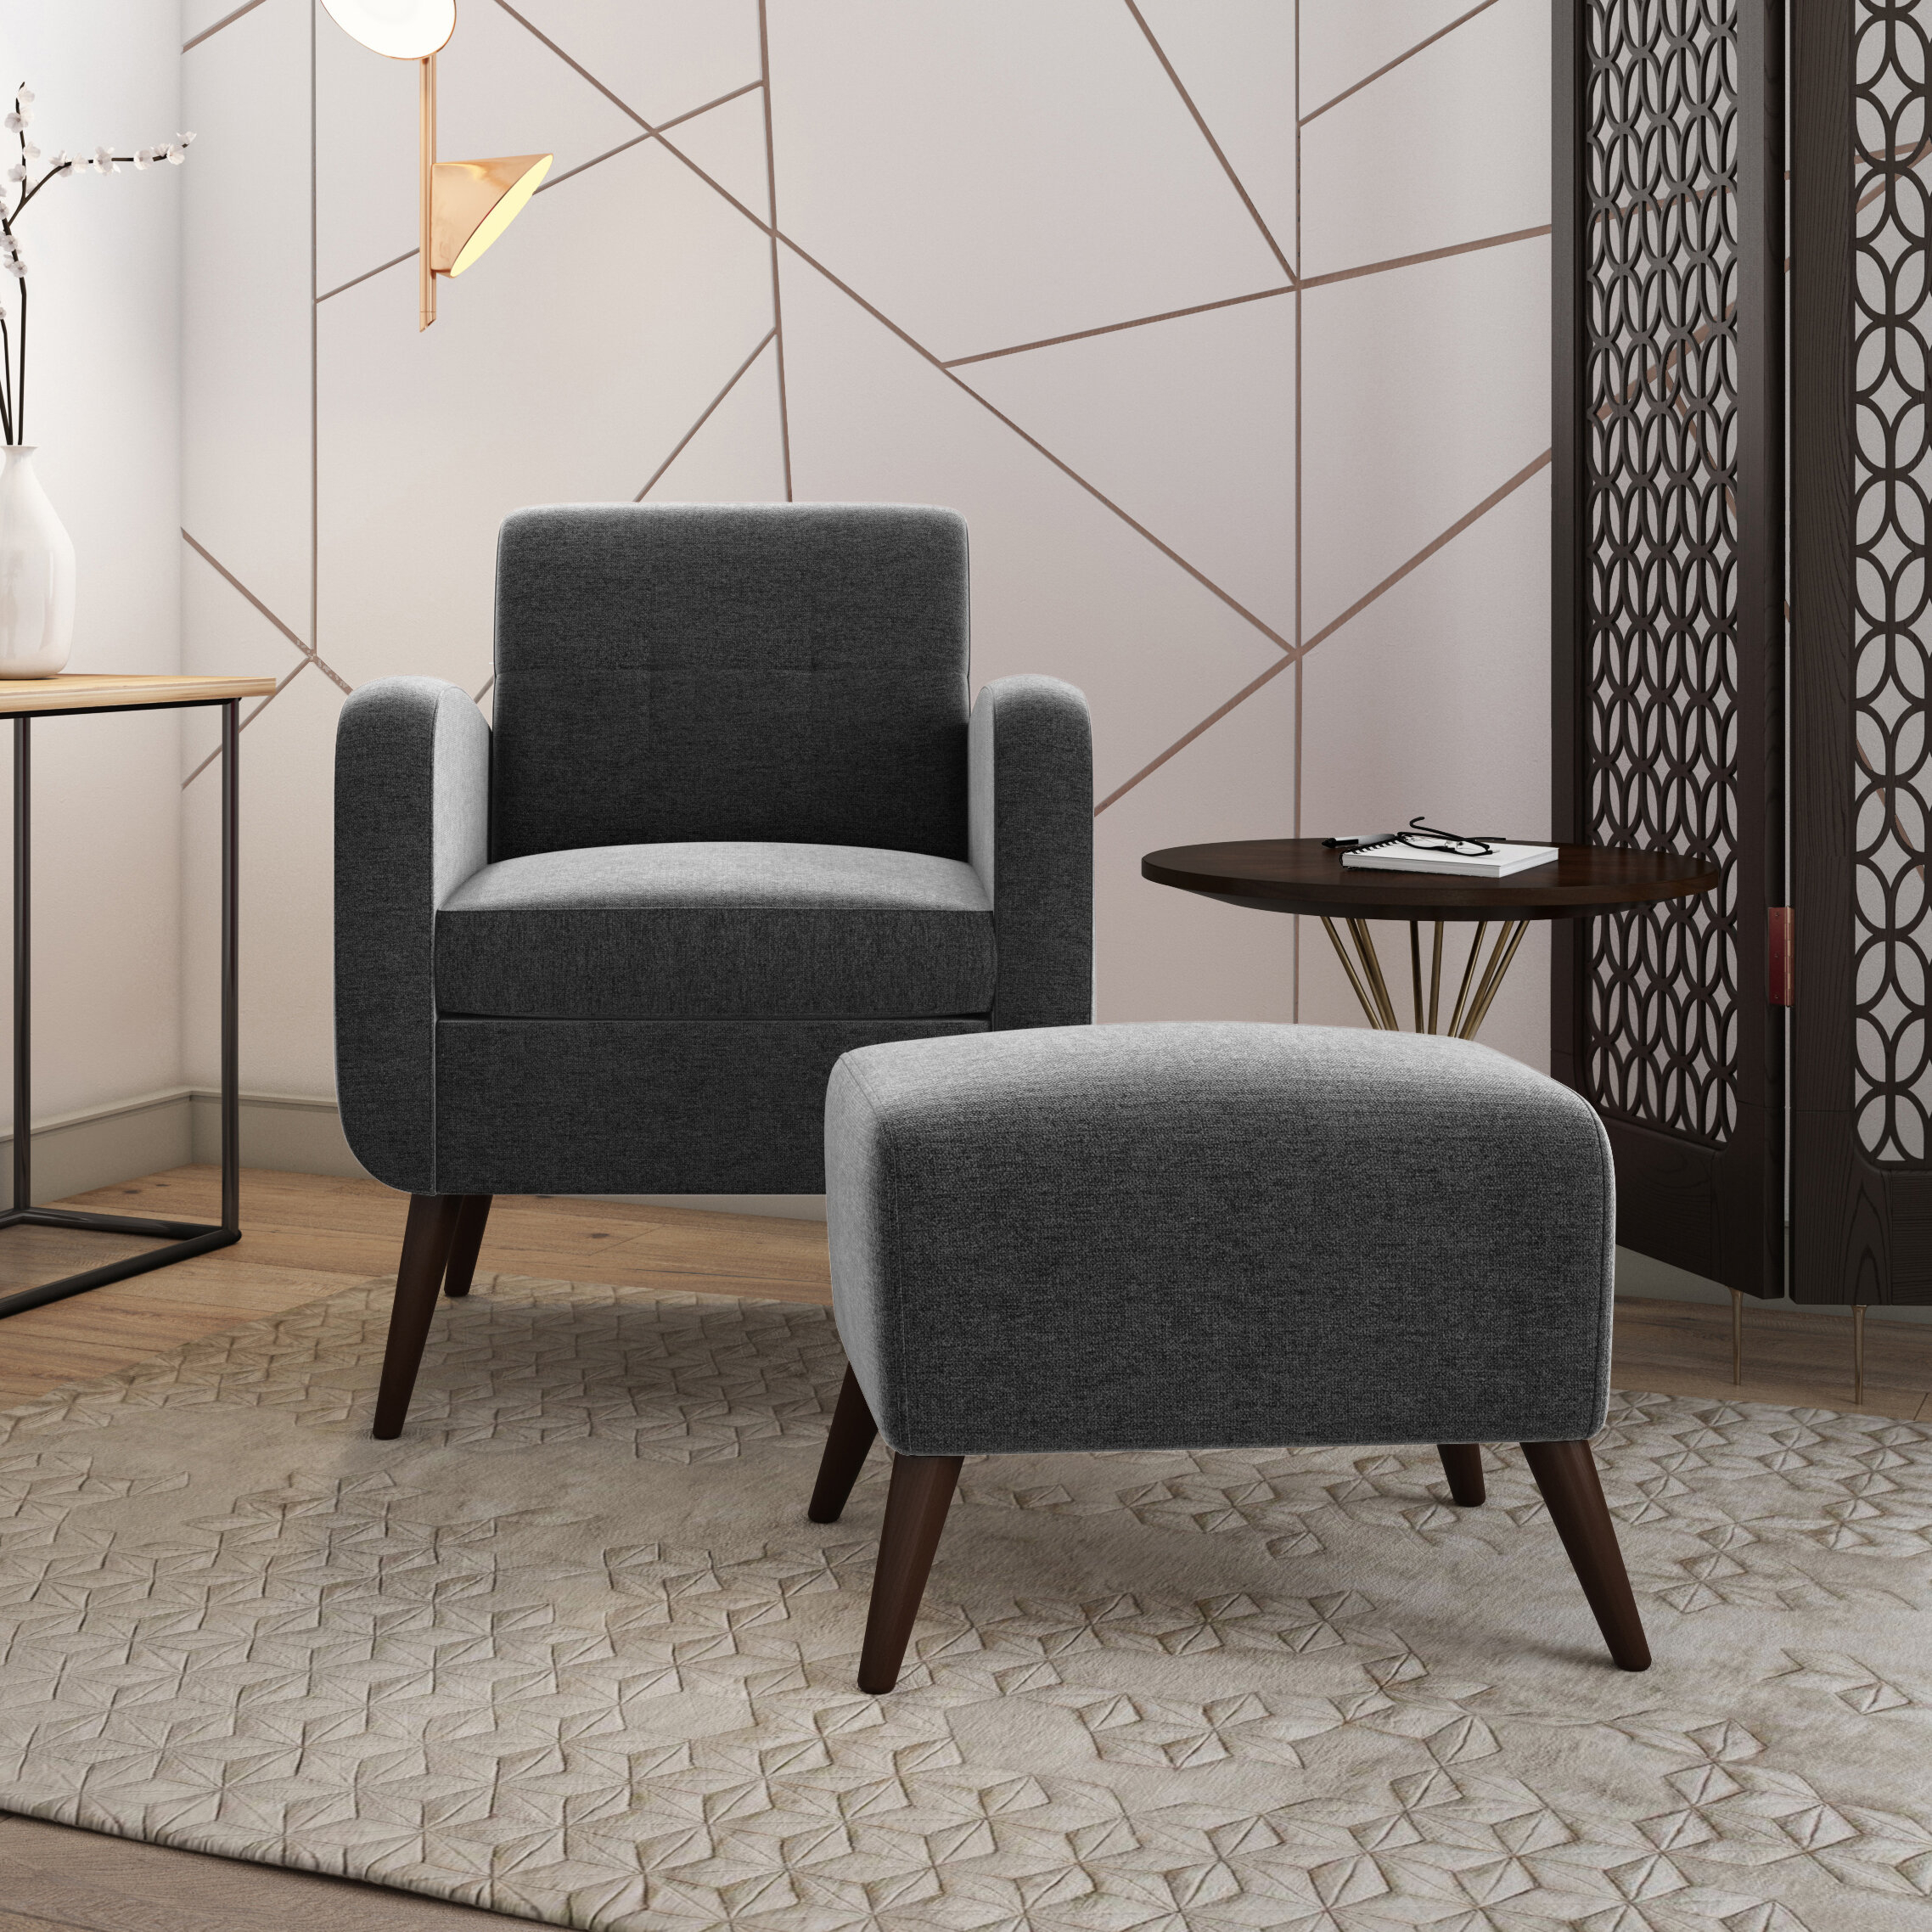 "Dario 22"" W Polyester Slipper Chair And Ottoman Throughout Alexander Cotton Blend Armchairs And Ottoman (View 14 of 15)"